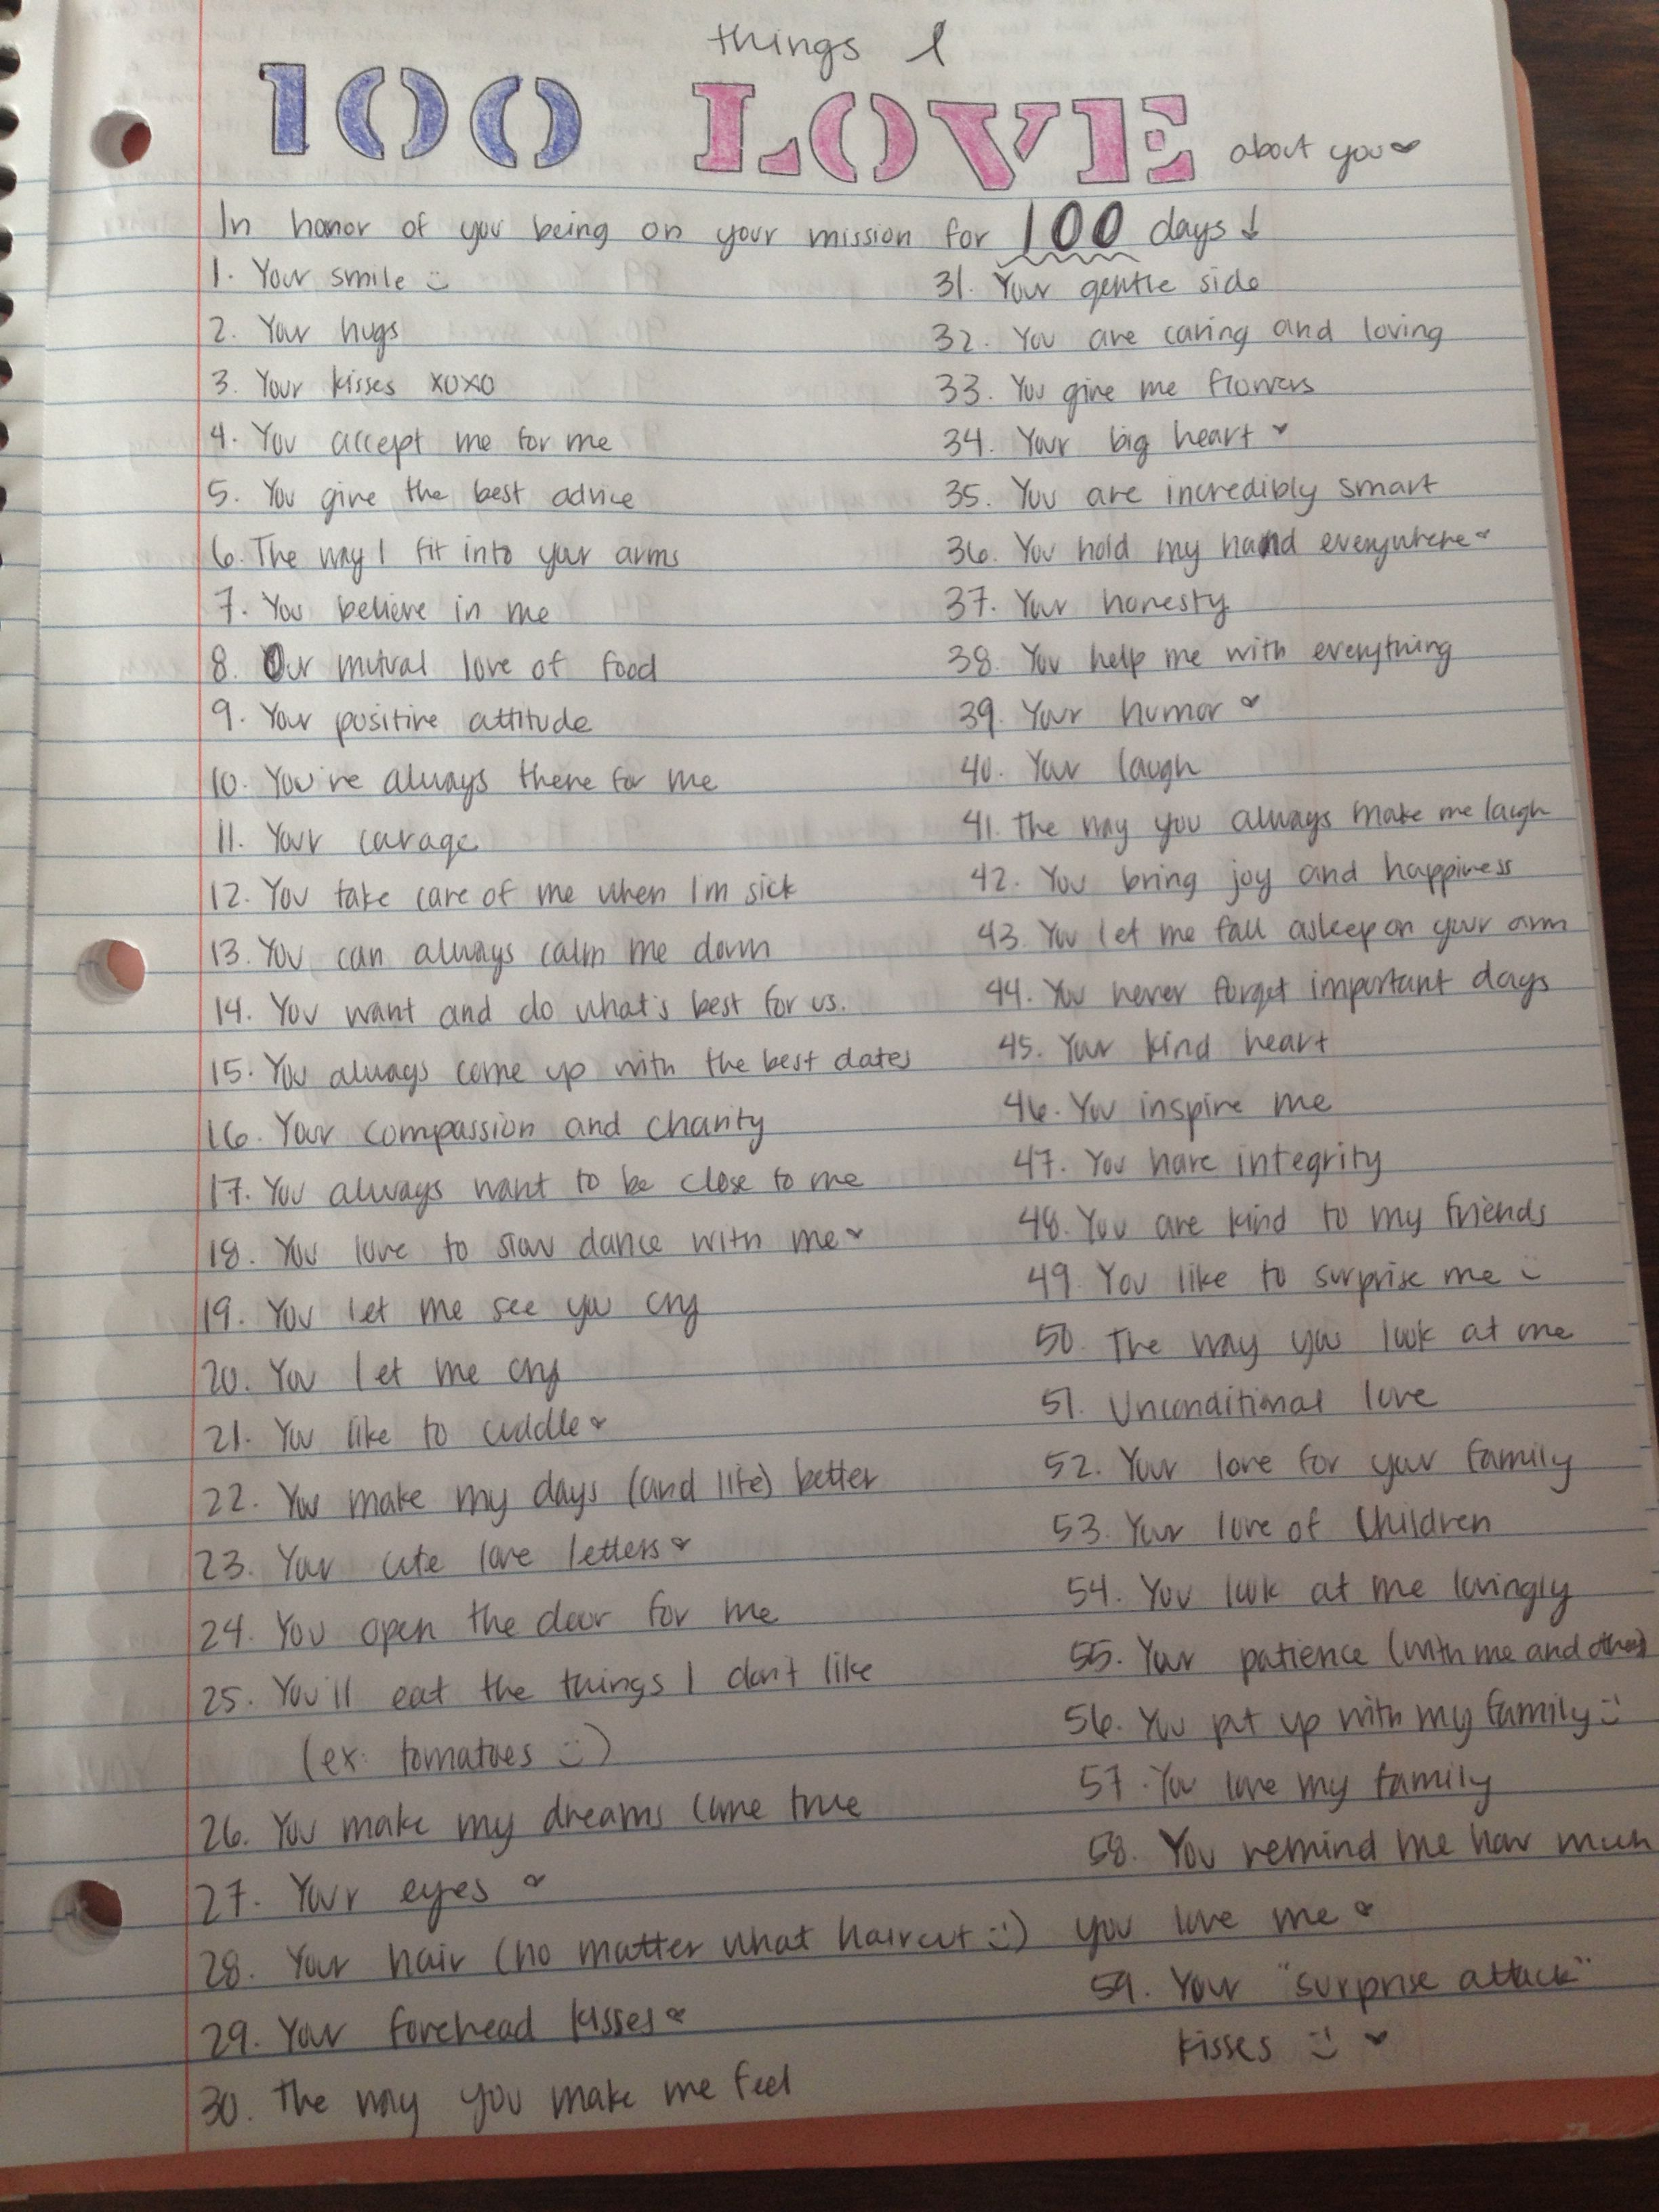 """100 Things I Love About You"" - LDS Missionary, been out for 100 days letter. #missionarygirlfriend"